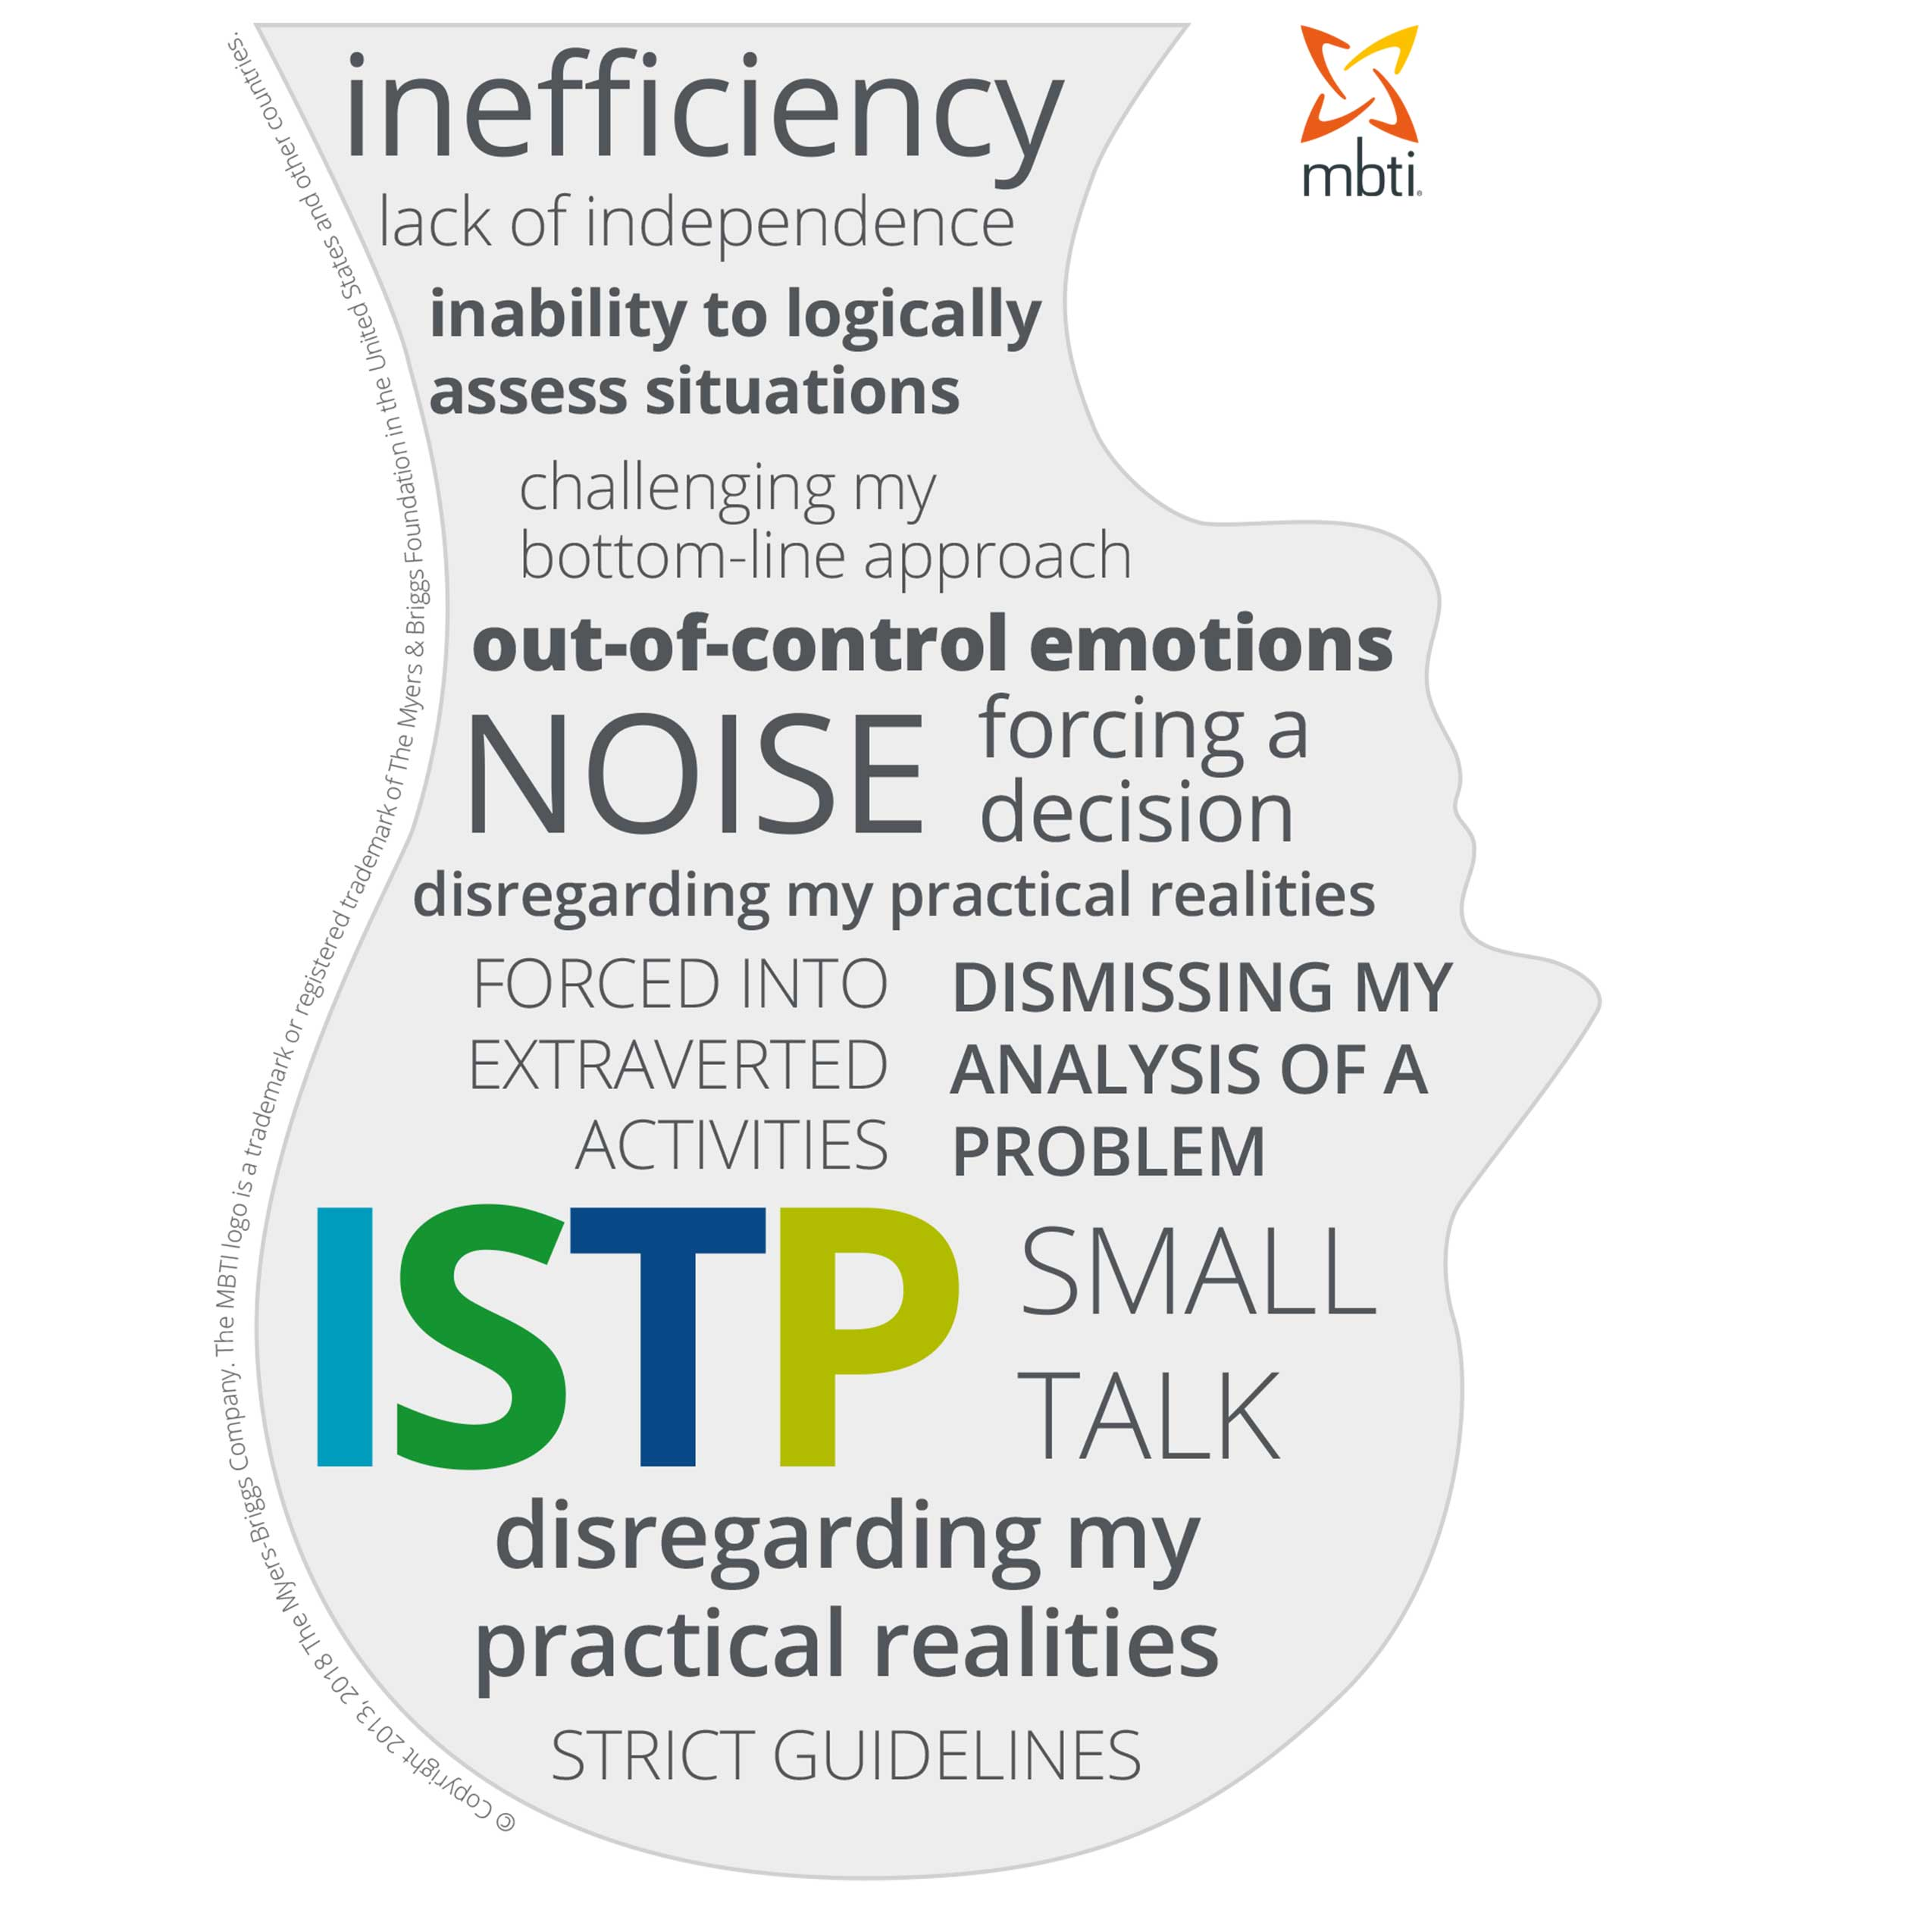 Typical stress triggers for ISTPs